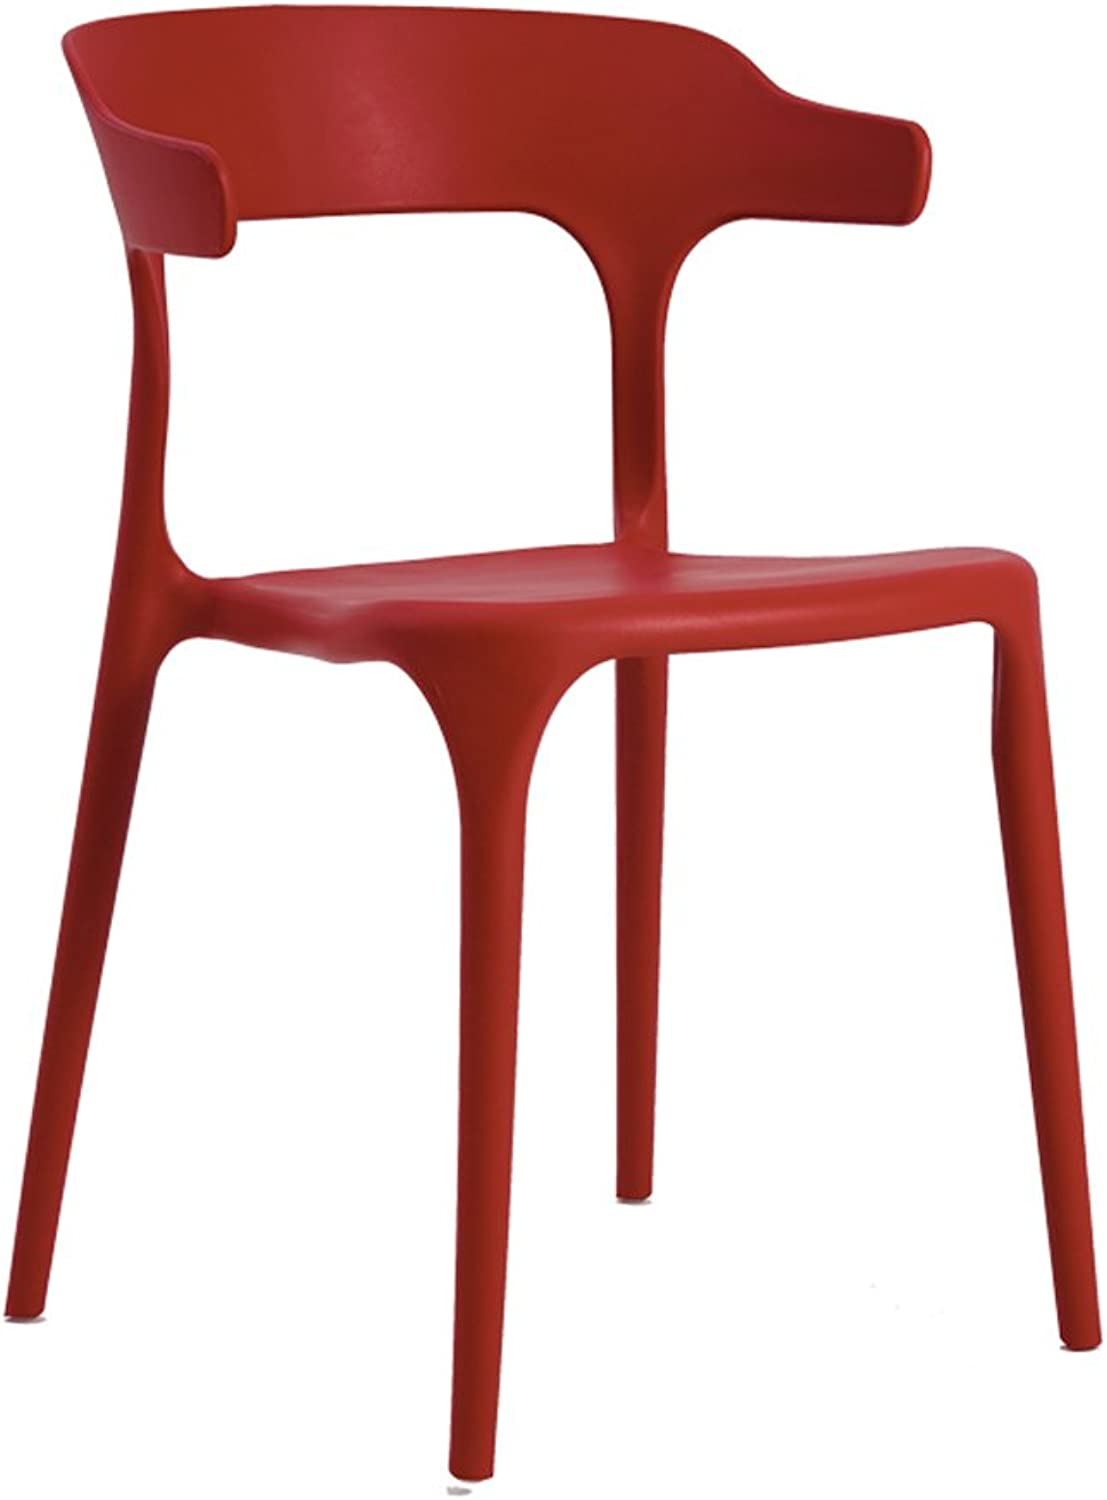 CJH Nordic Leisure Modern Minimalist Plastic Dining Chair Creative Adult Fashion Chair Restaurant Back Stool Home Horn Chair Red